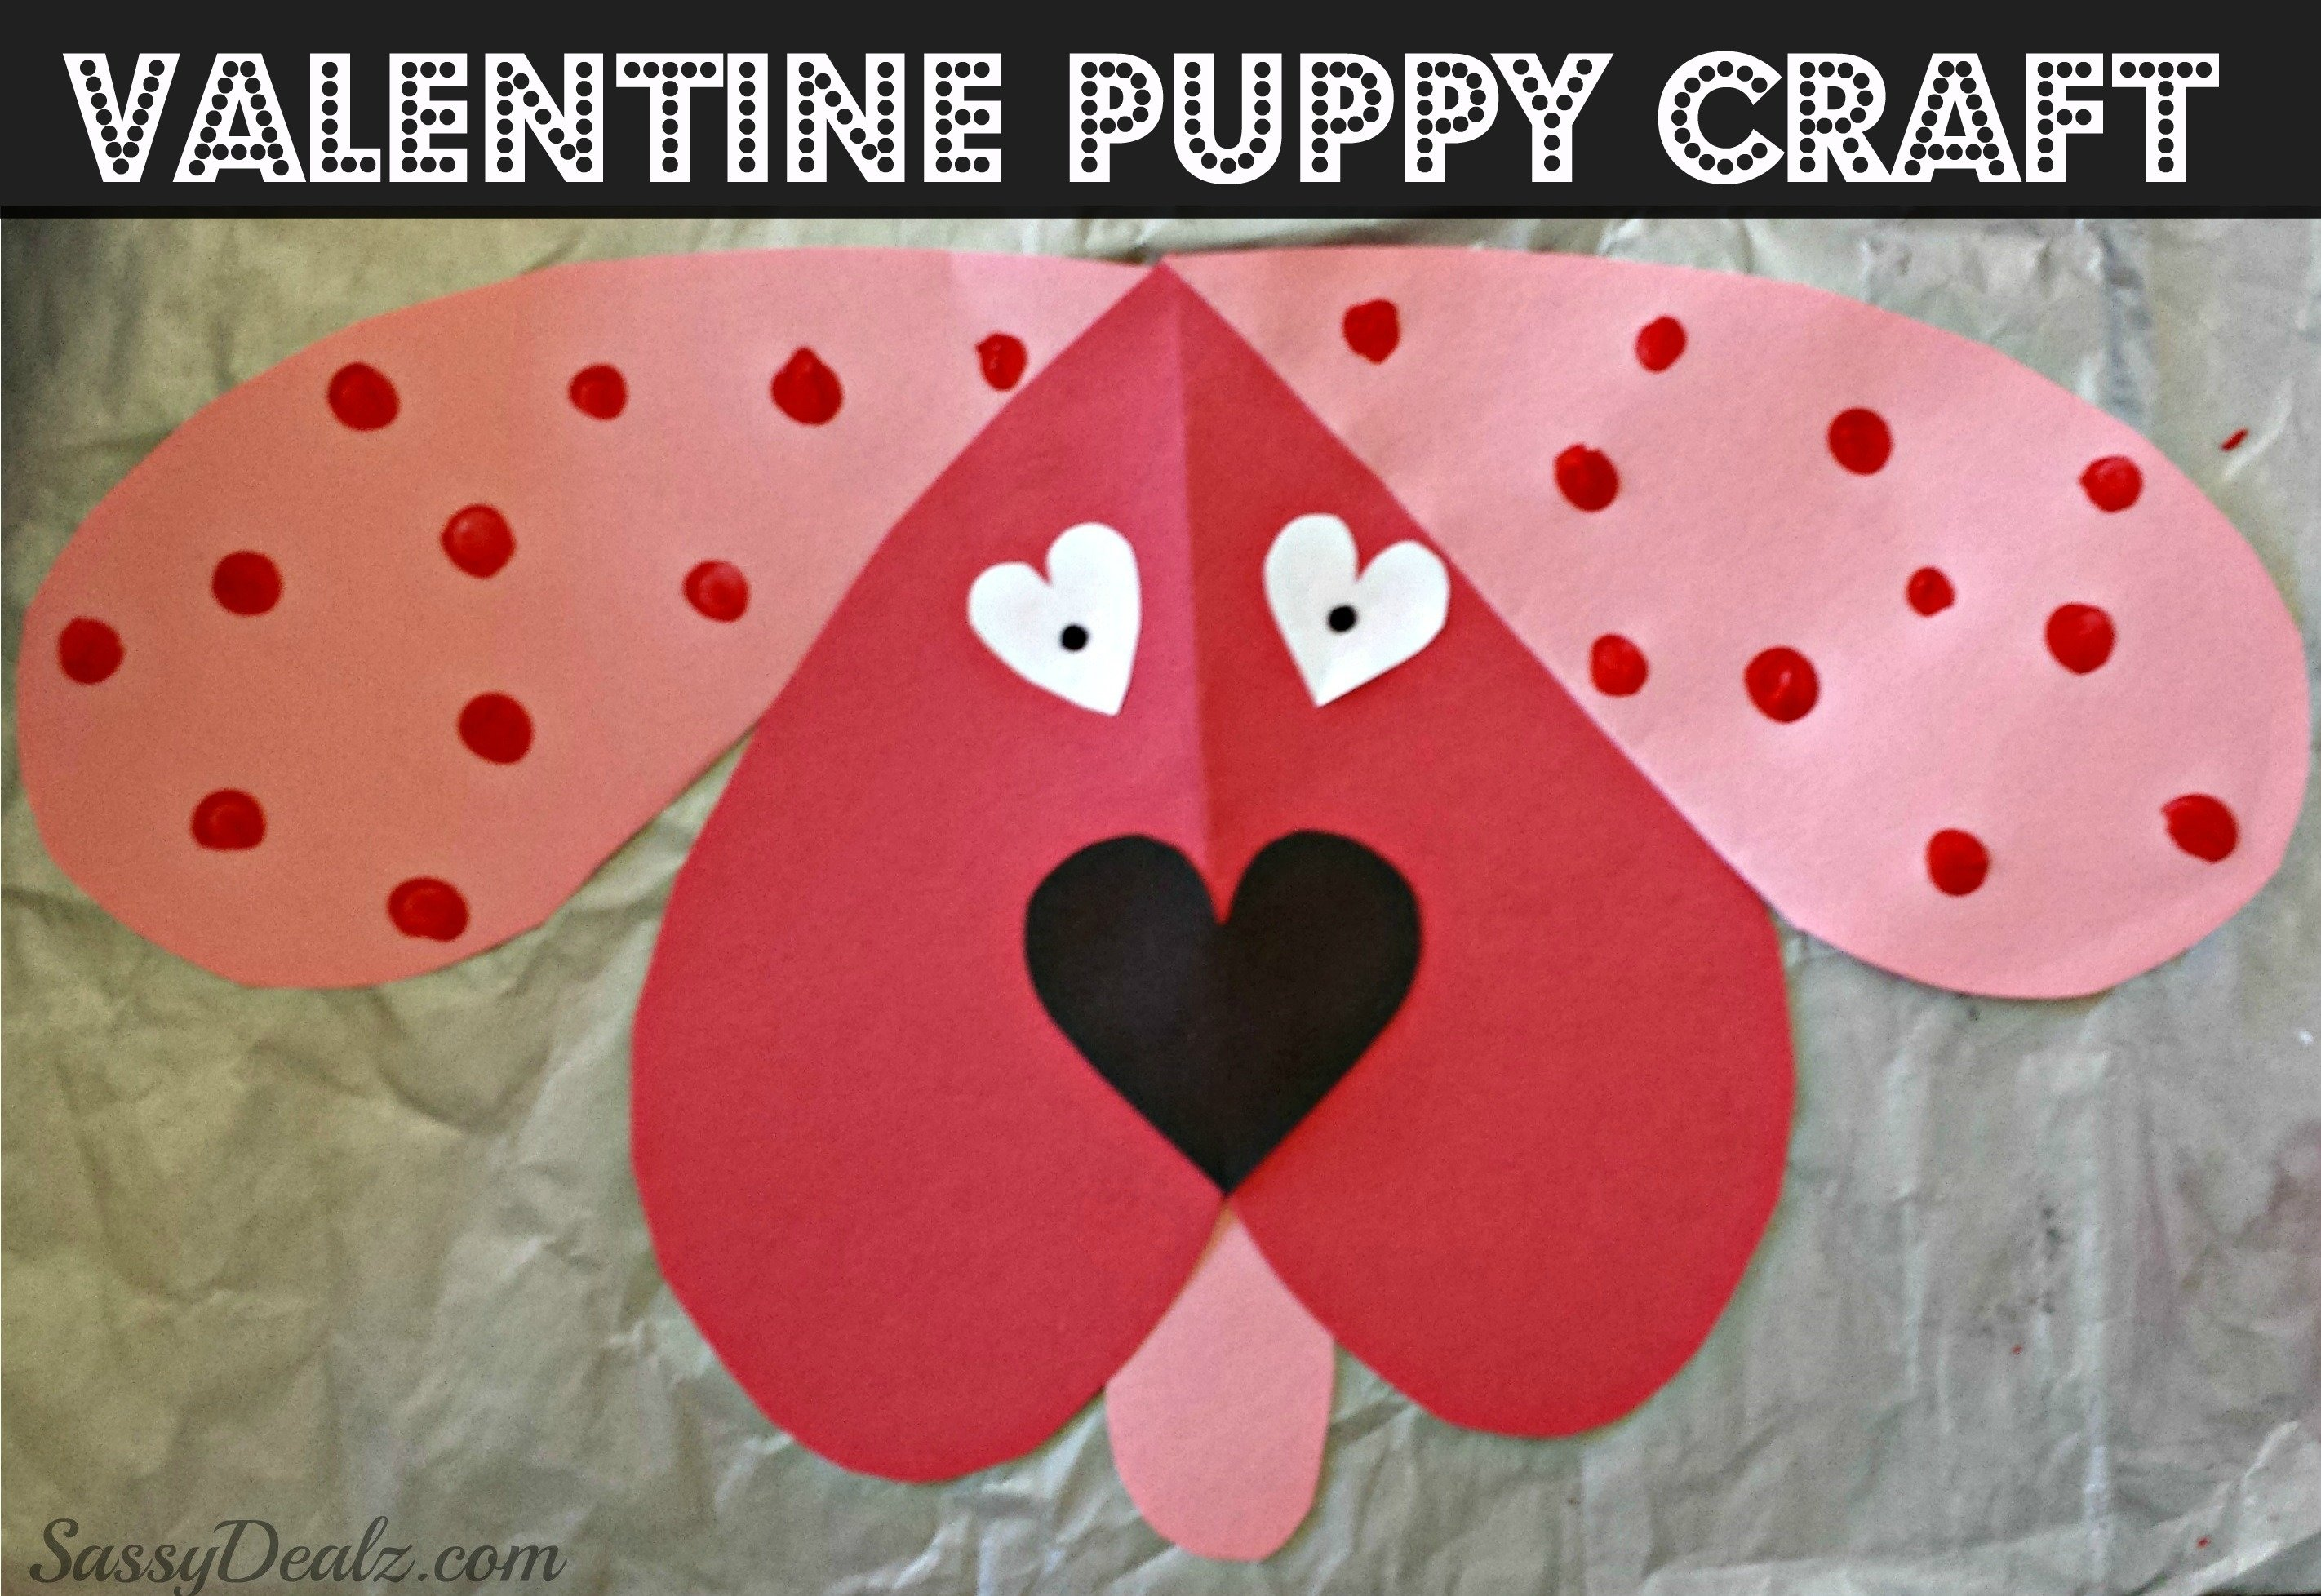 10 Amazing Crafts For Valentines Day Ideas cute dog valentines day craft for kids crafty morning 3 2020